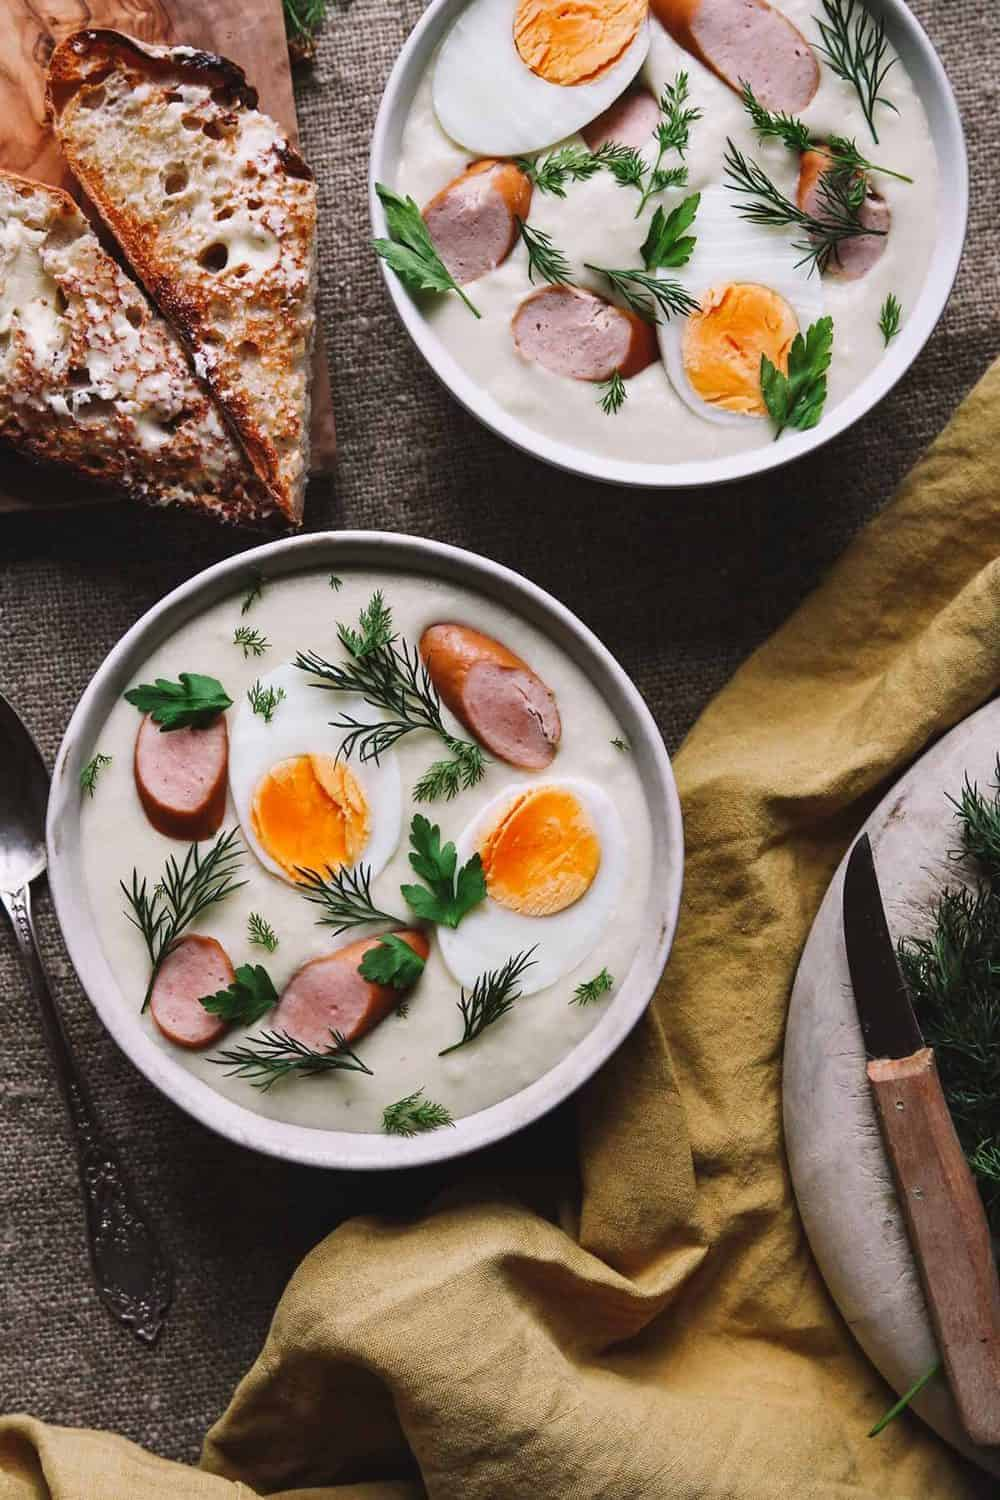 Two bowls of Polish bialy barszcz topped with hard-boiled eggs halves, sliced sausage, and fresh dill.